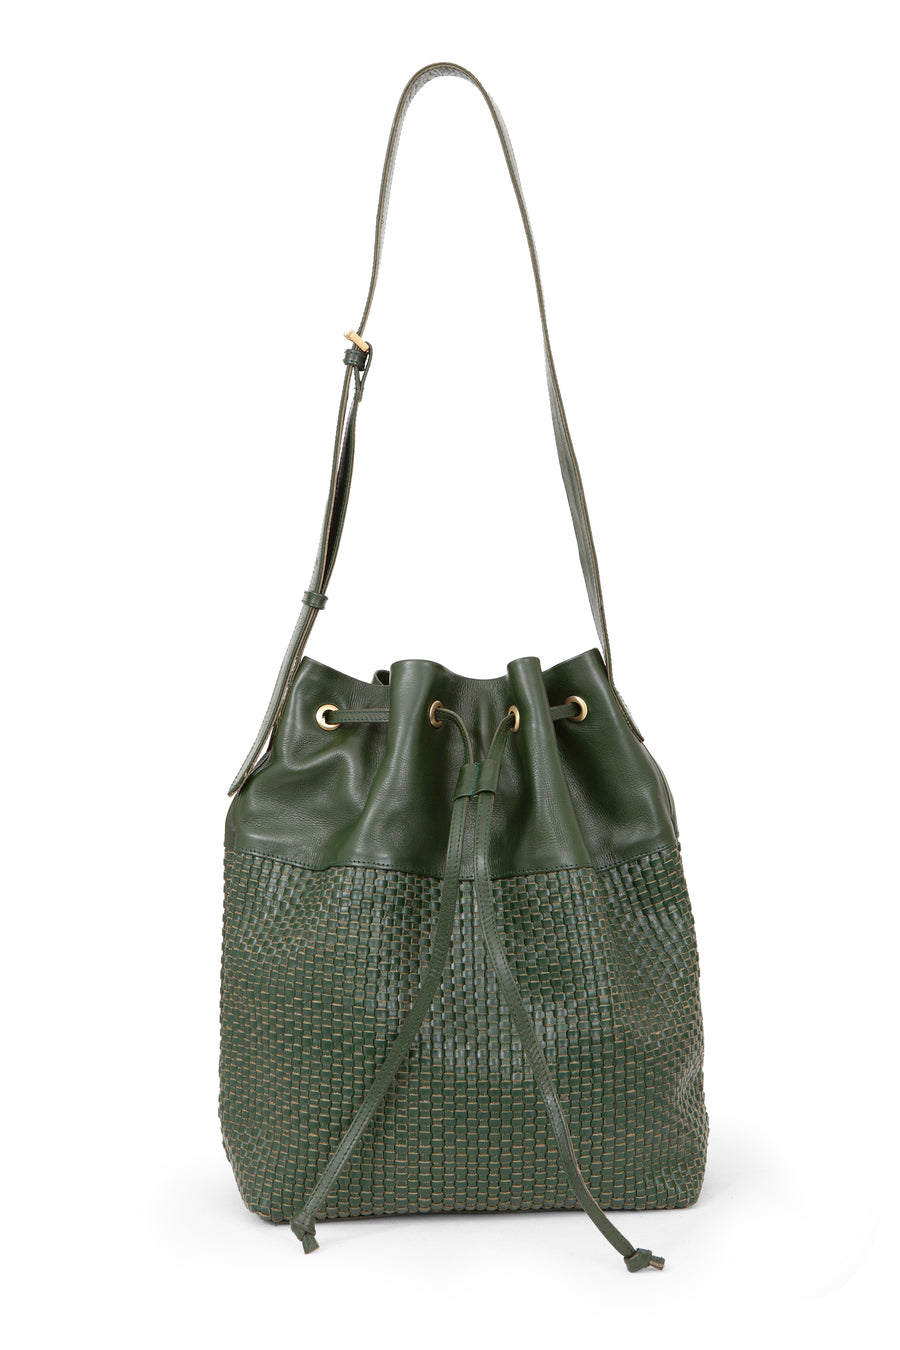 LADY HESTER 4 - THE BUCKET BAG